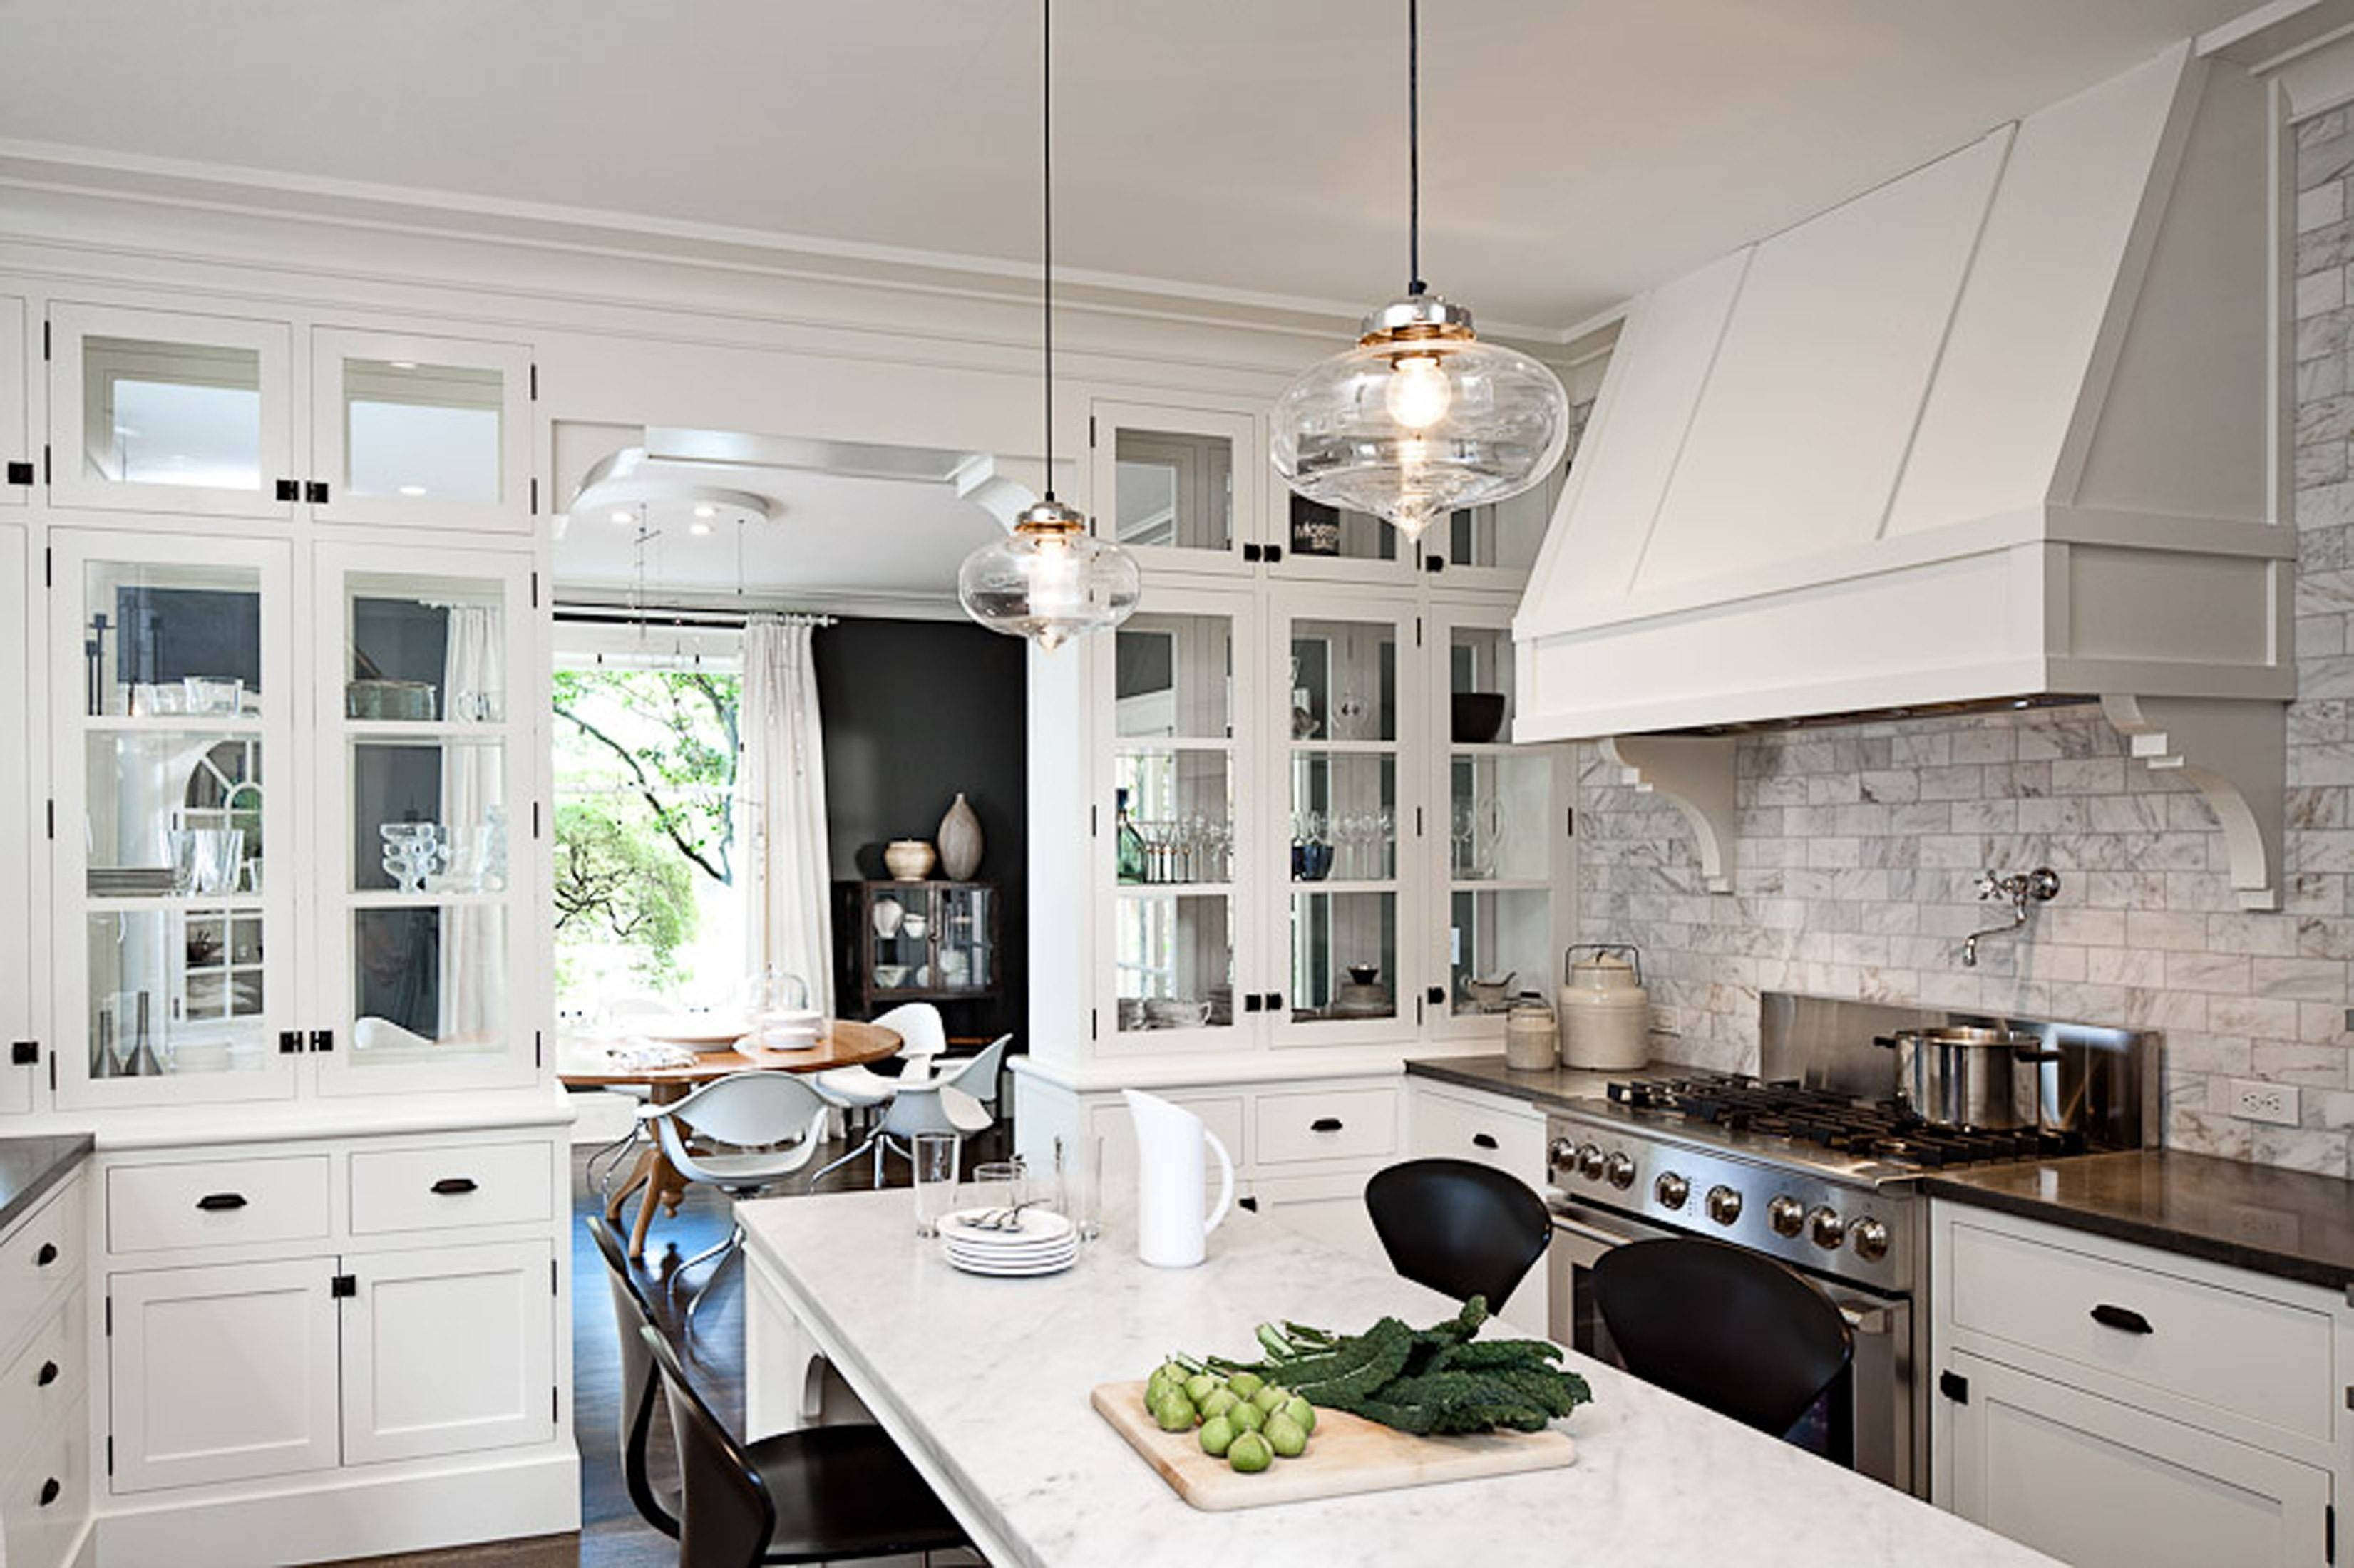 Hanging Lights For Kitchen Stainless Steel Kitchen Pendant Light pertaining to Stainless Steel Kitchen Pendant Lights (Image 4 of 15)